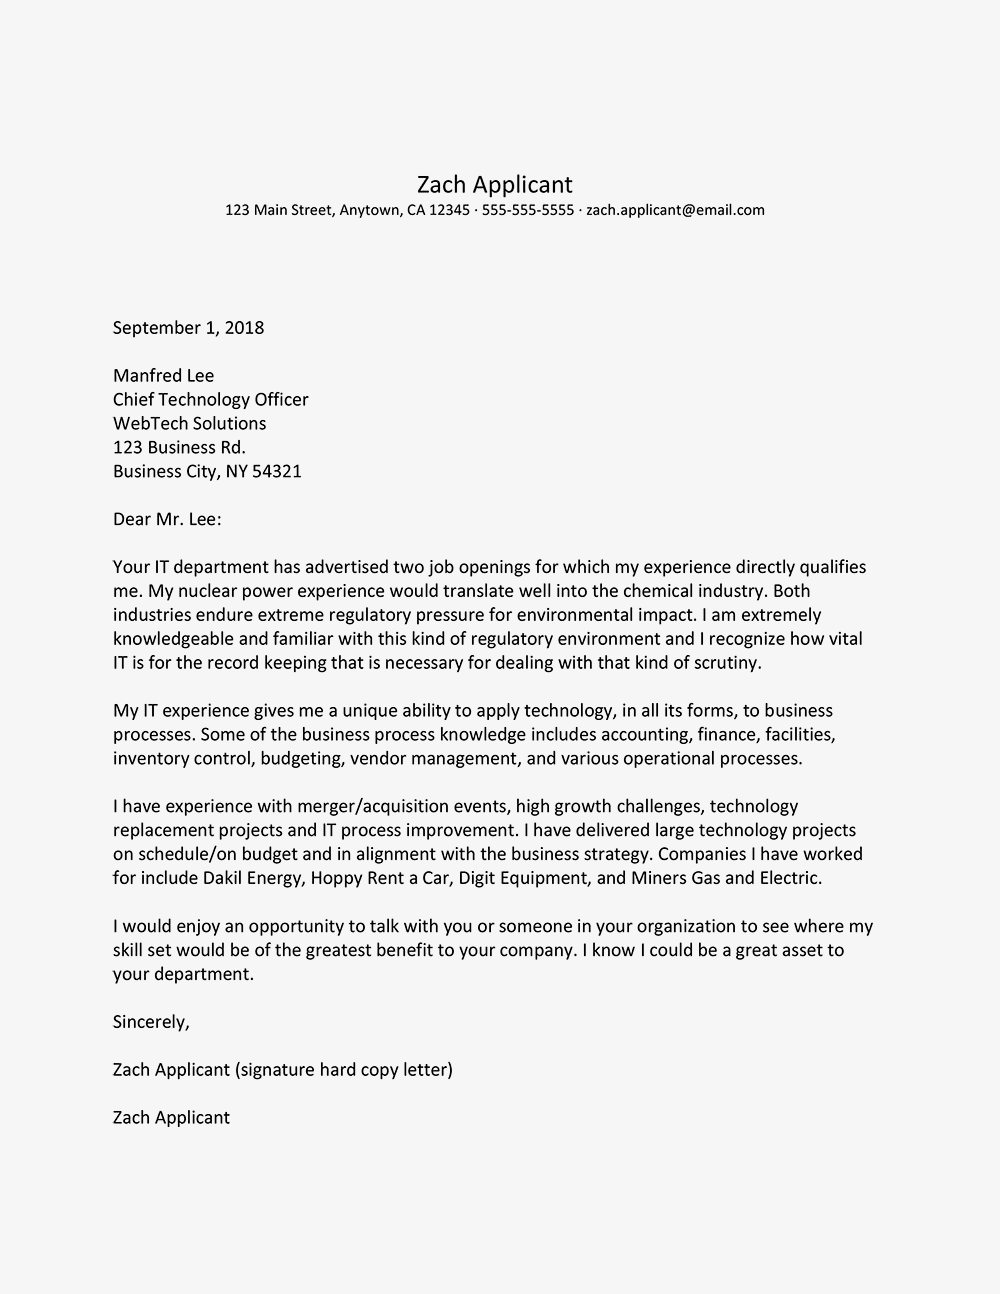 how to write a generic cover letter for multiple jobs   Nadi.palmex.co